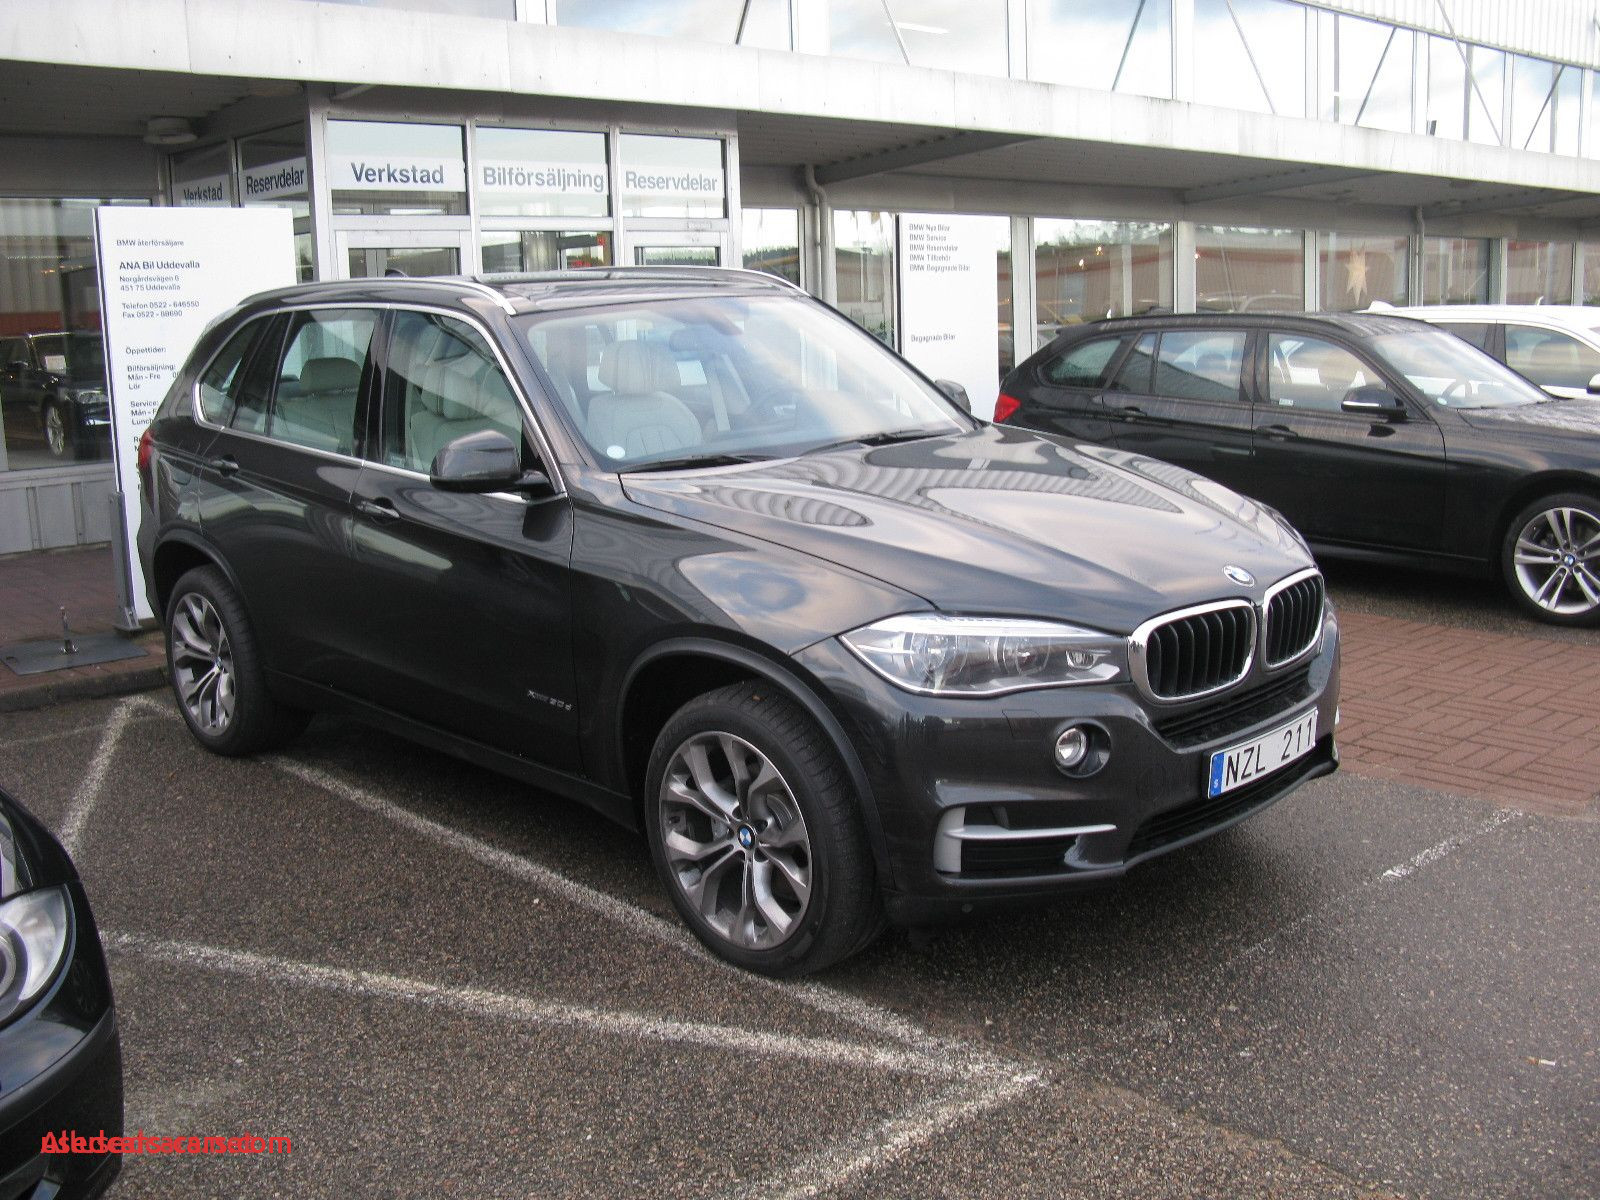 Used Cars for Sale X5 New Bmw 2012 Inspirational File Bmw X5 3 0d F15 Wikimedia Mons